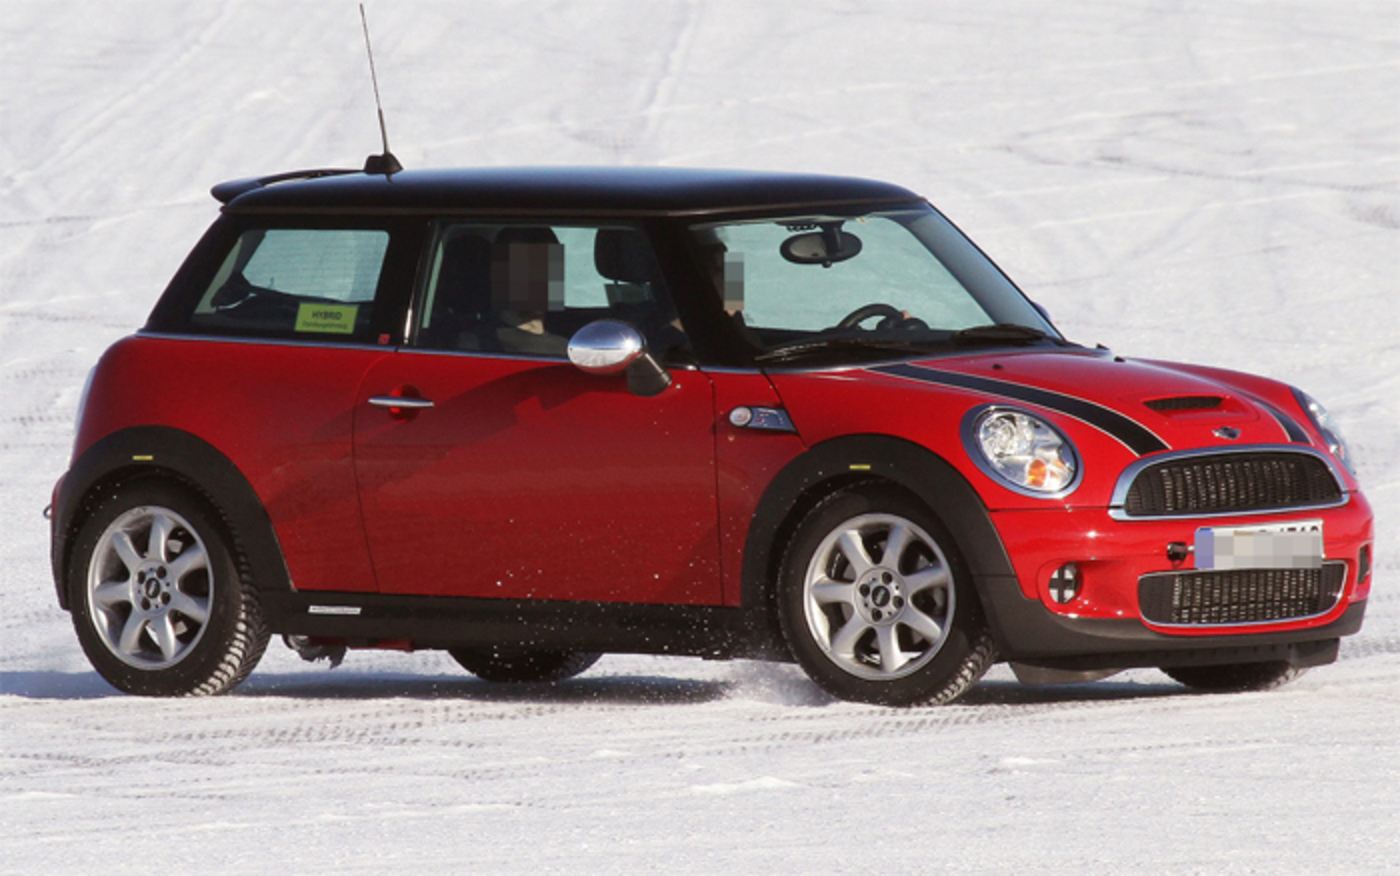 Mini Cooper S Hybrid All Wheel Drive: Spotted!